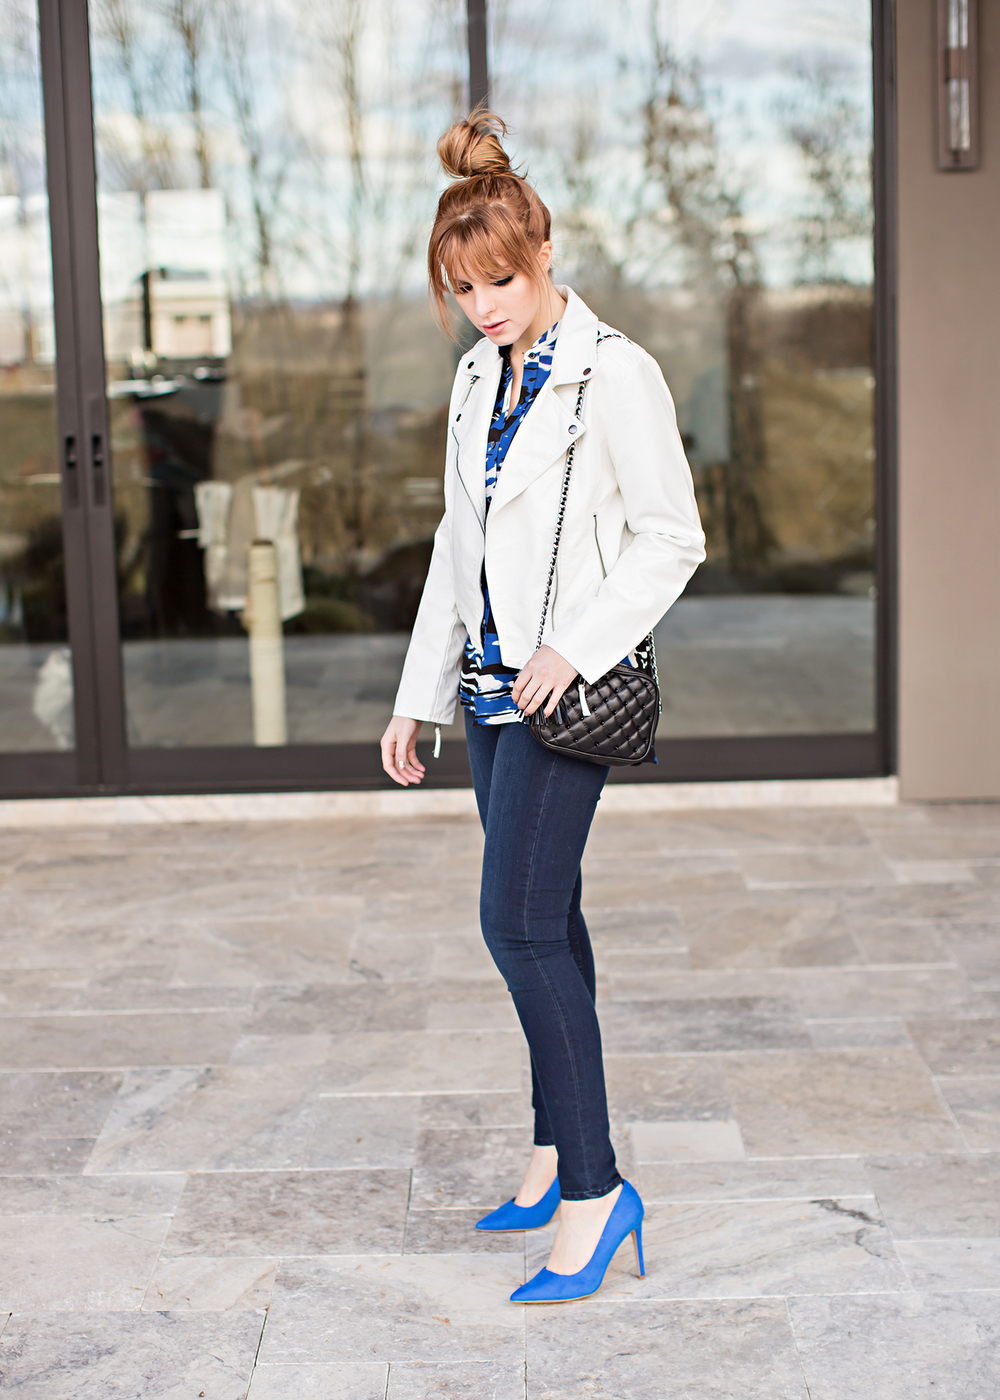 redhead fashion wearing parker blouse and cobalt blue heels